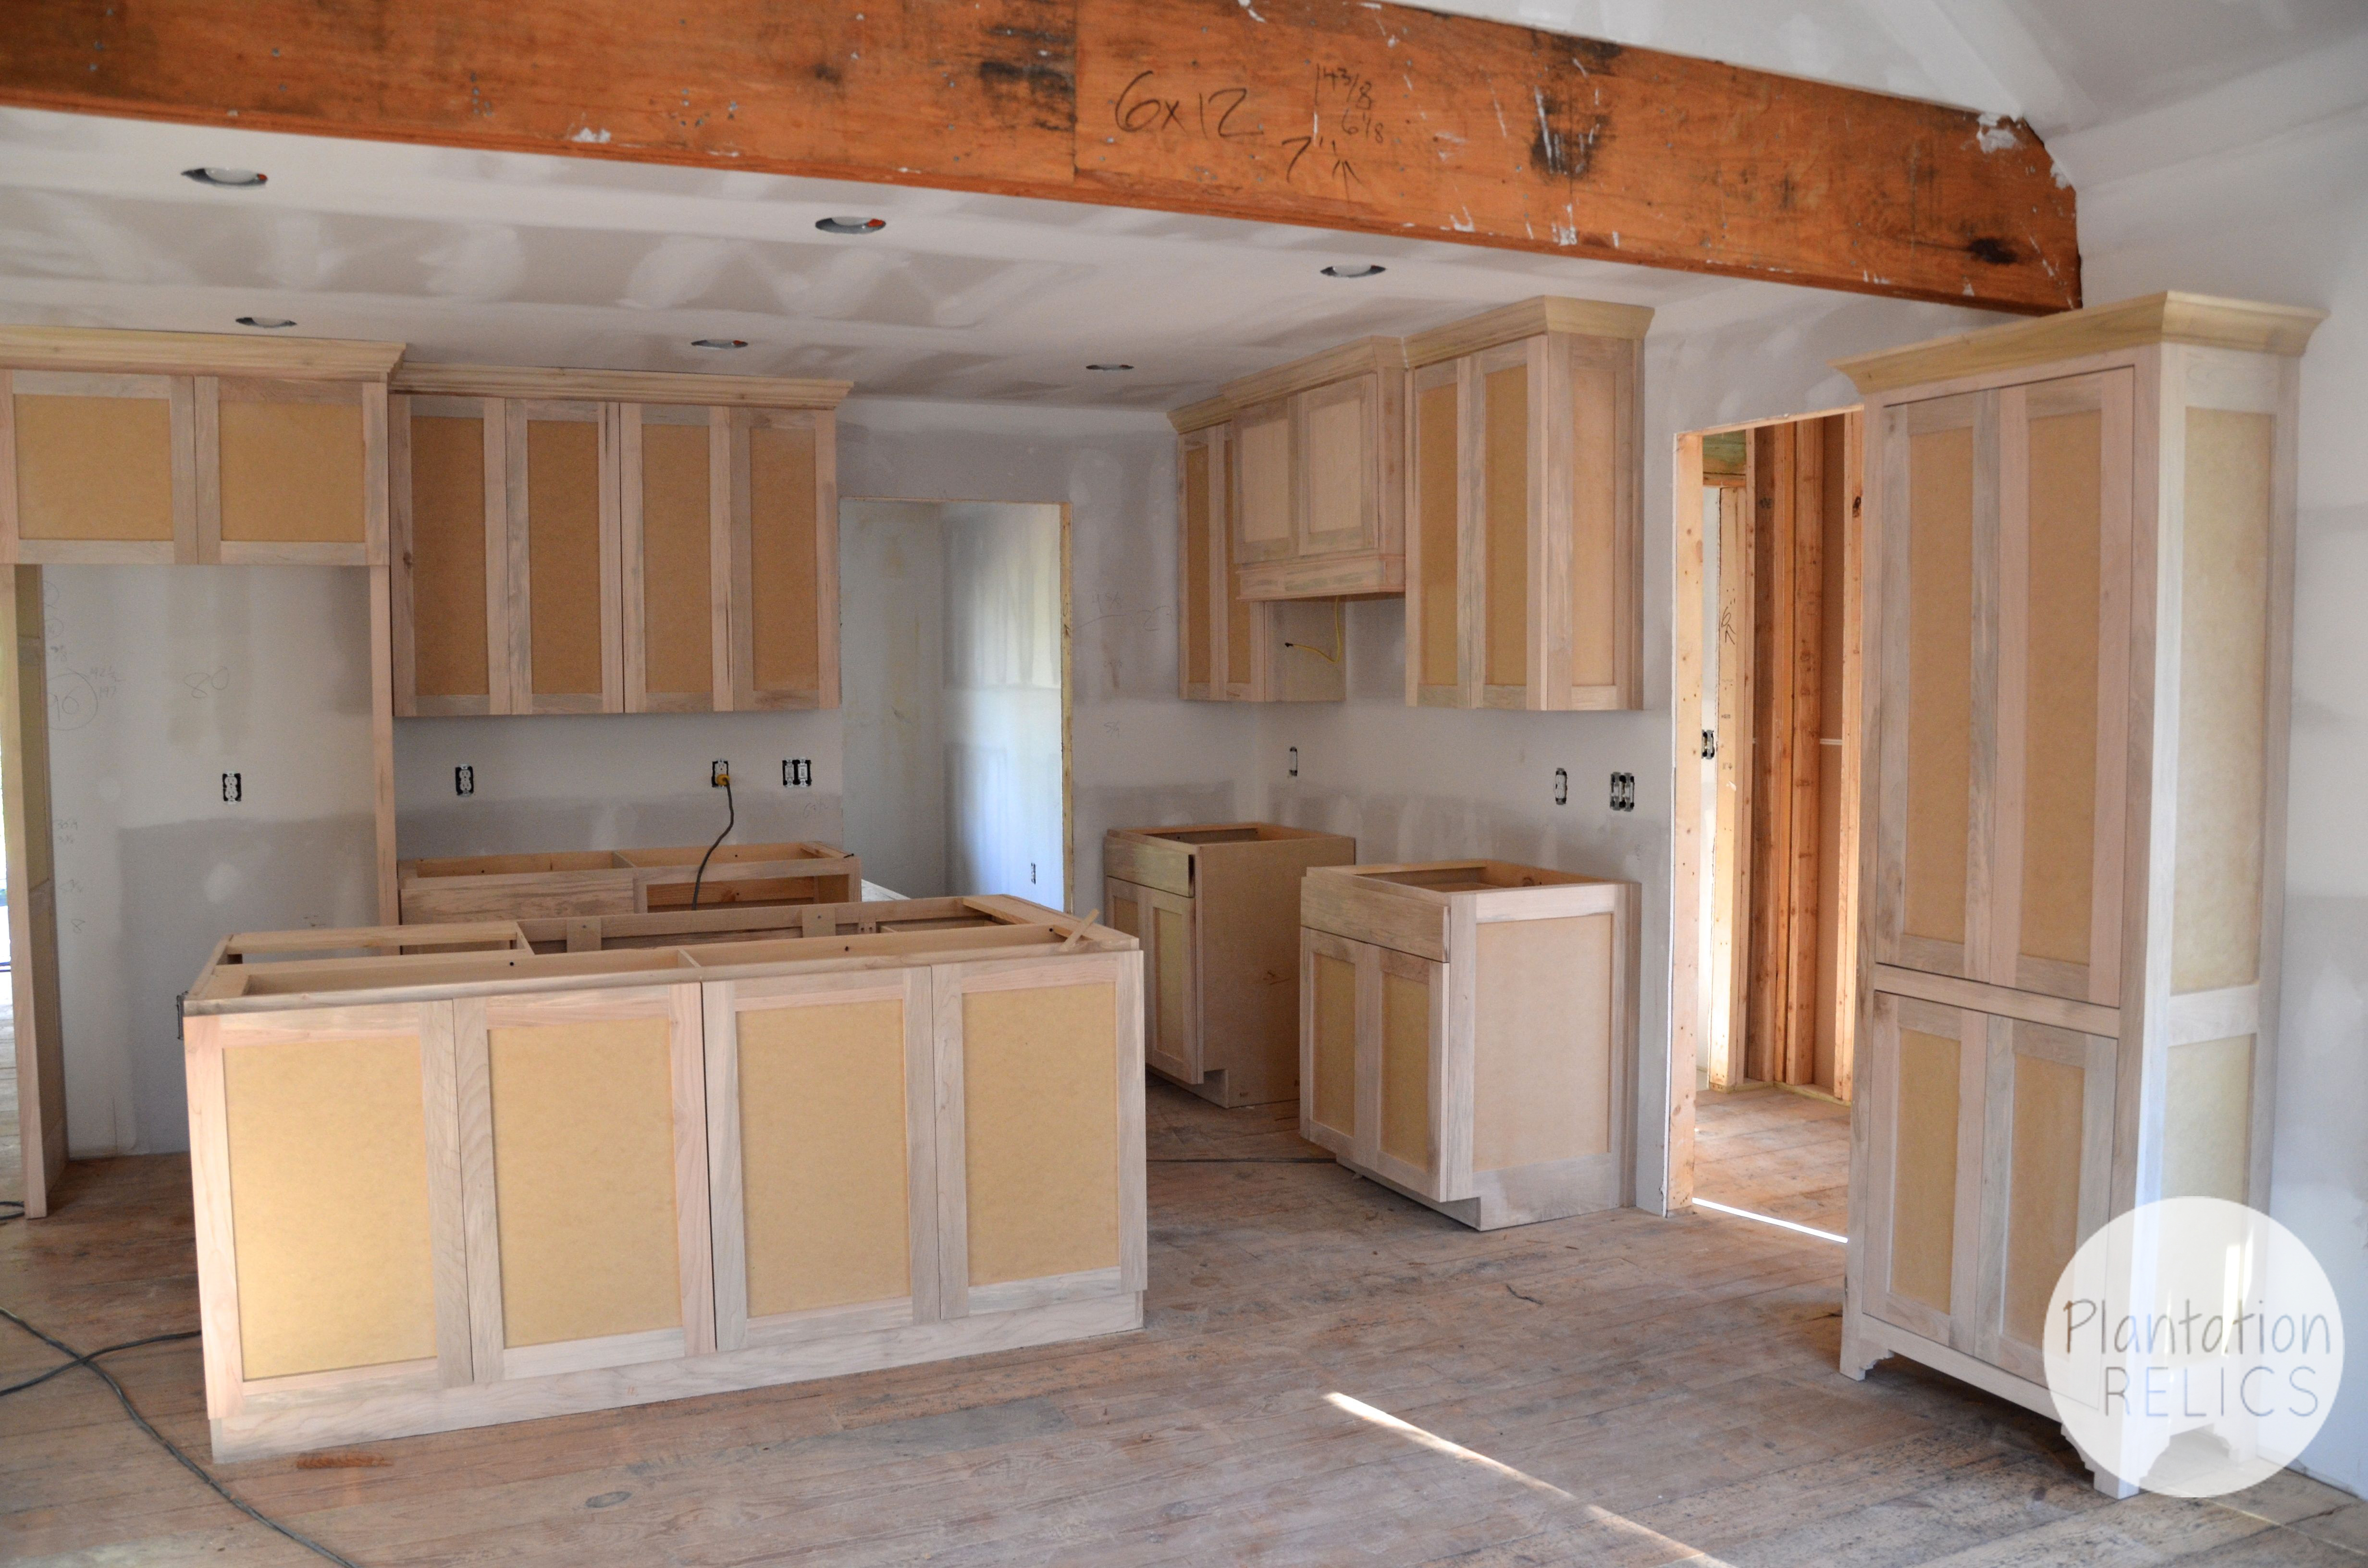 new kitchen cabinets installed flip house installing kitchen cabinets Kitchen cabinets before paint from french door flip